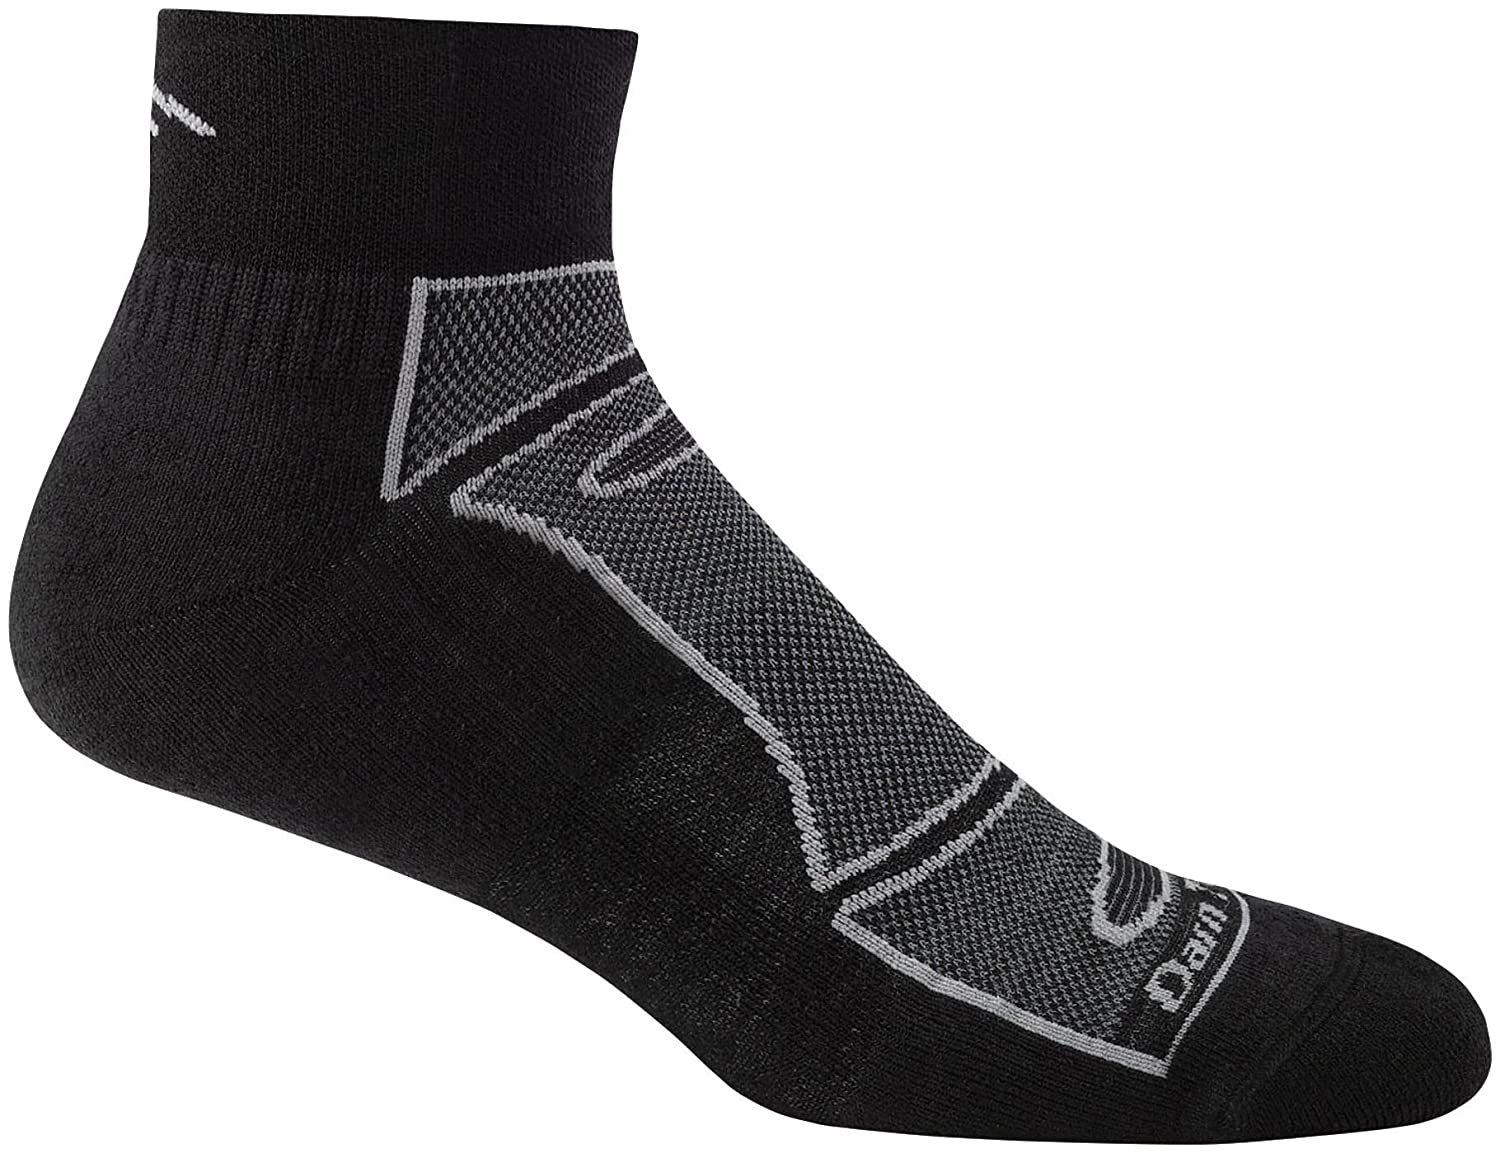 Darn Tough Merino Wool Athletic Socks